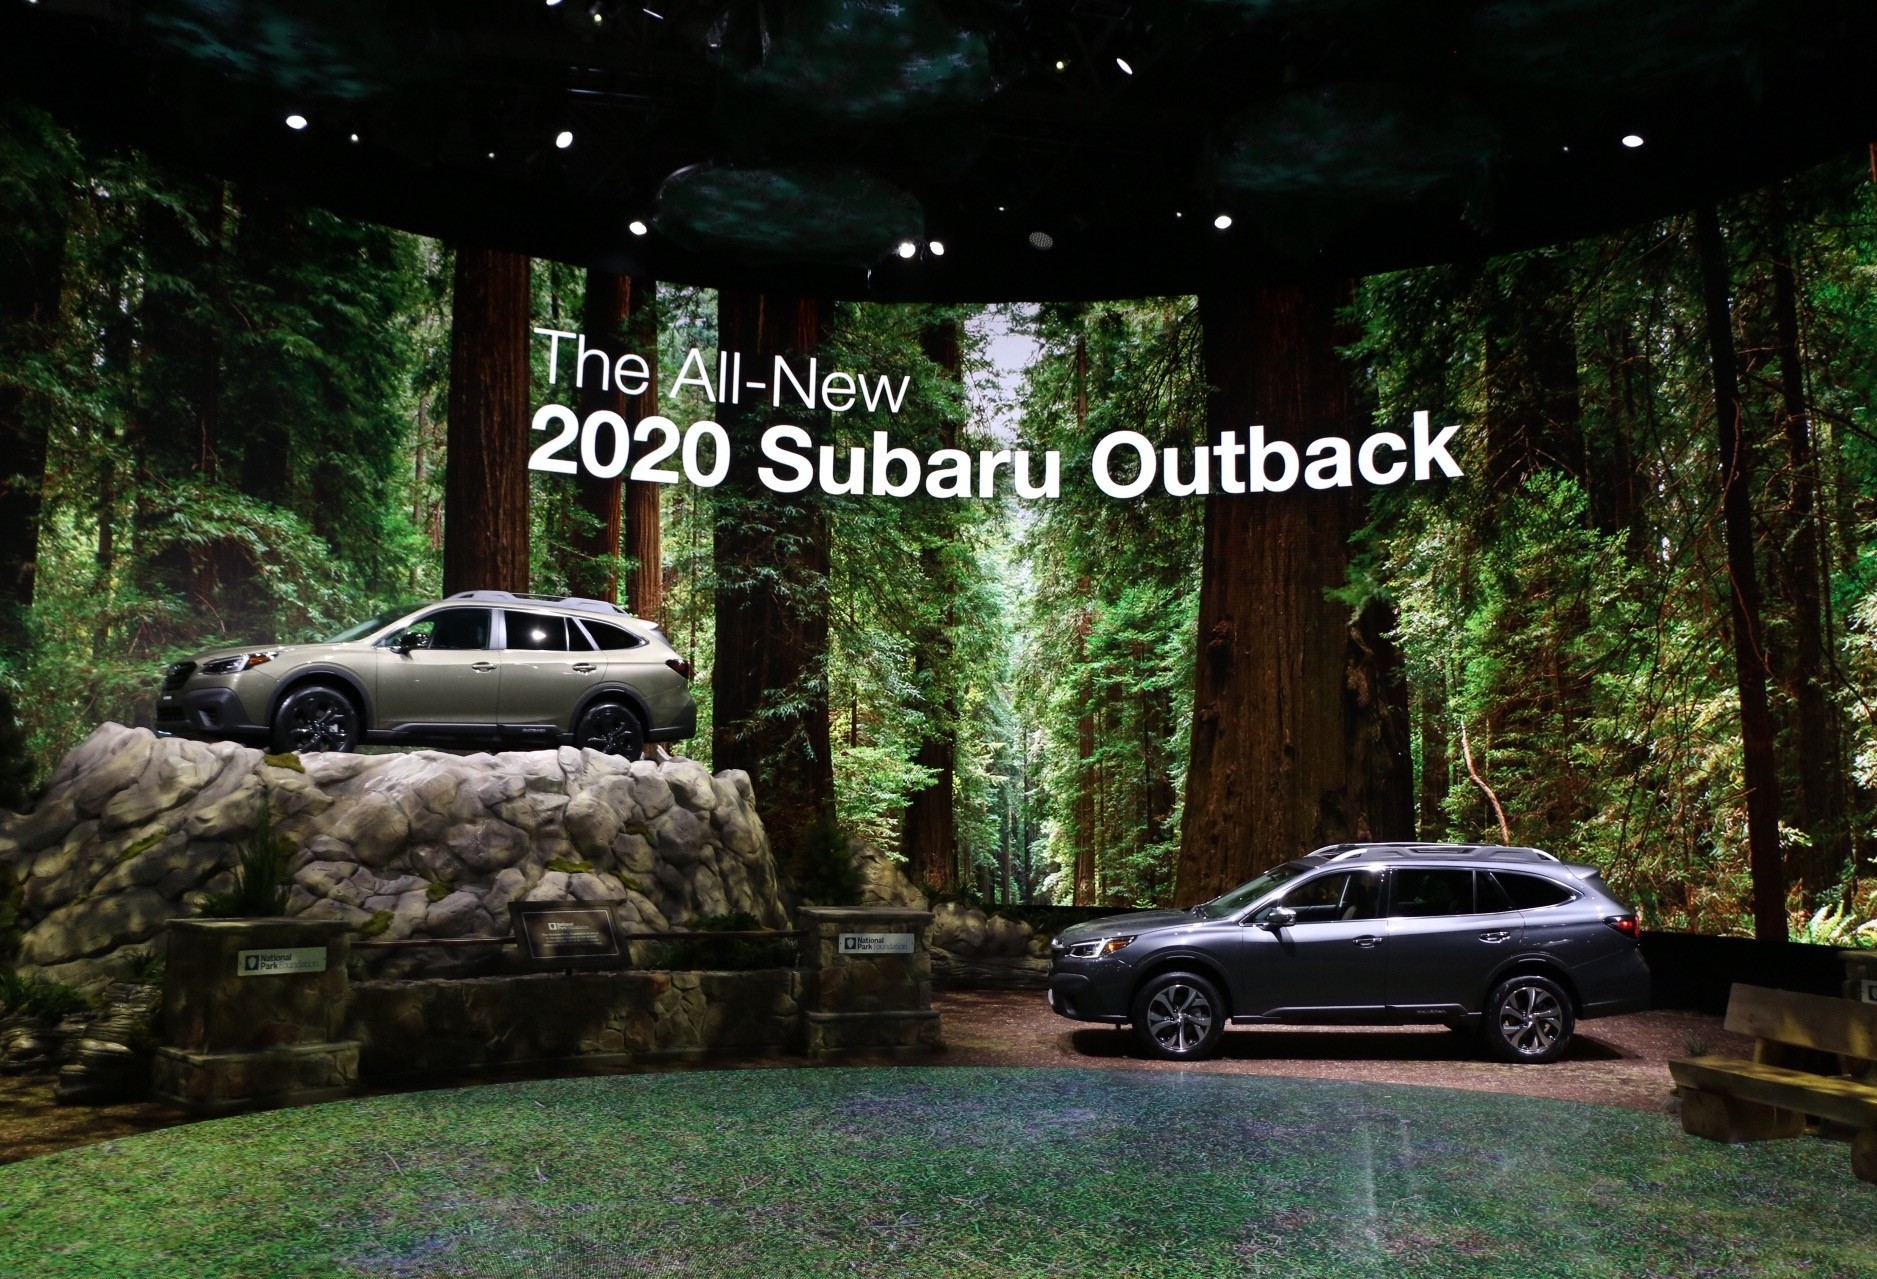 All-New 2020 Subaru Outback: Rugged, Tech-Laden, and Refined